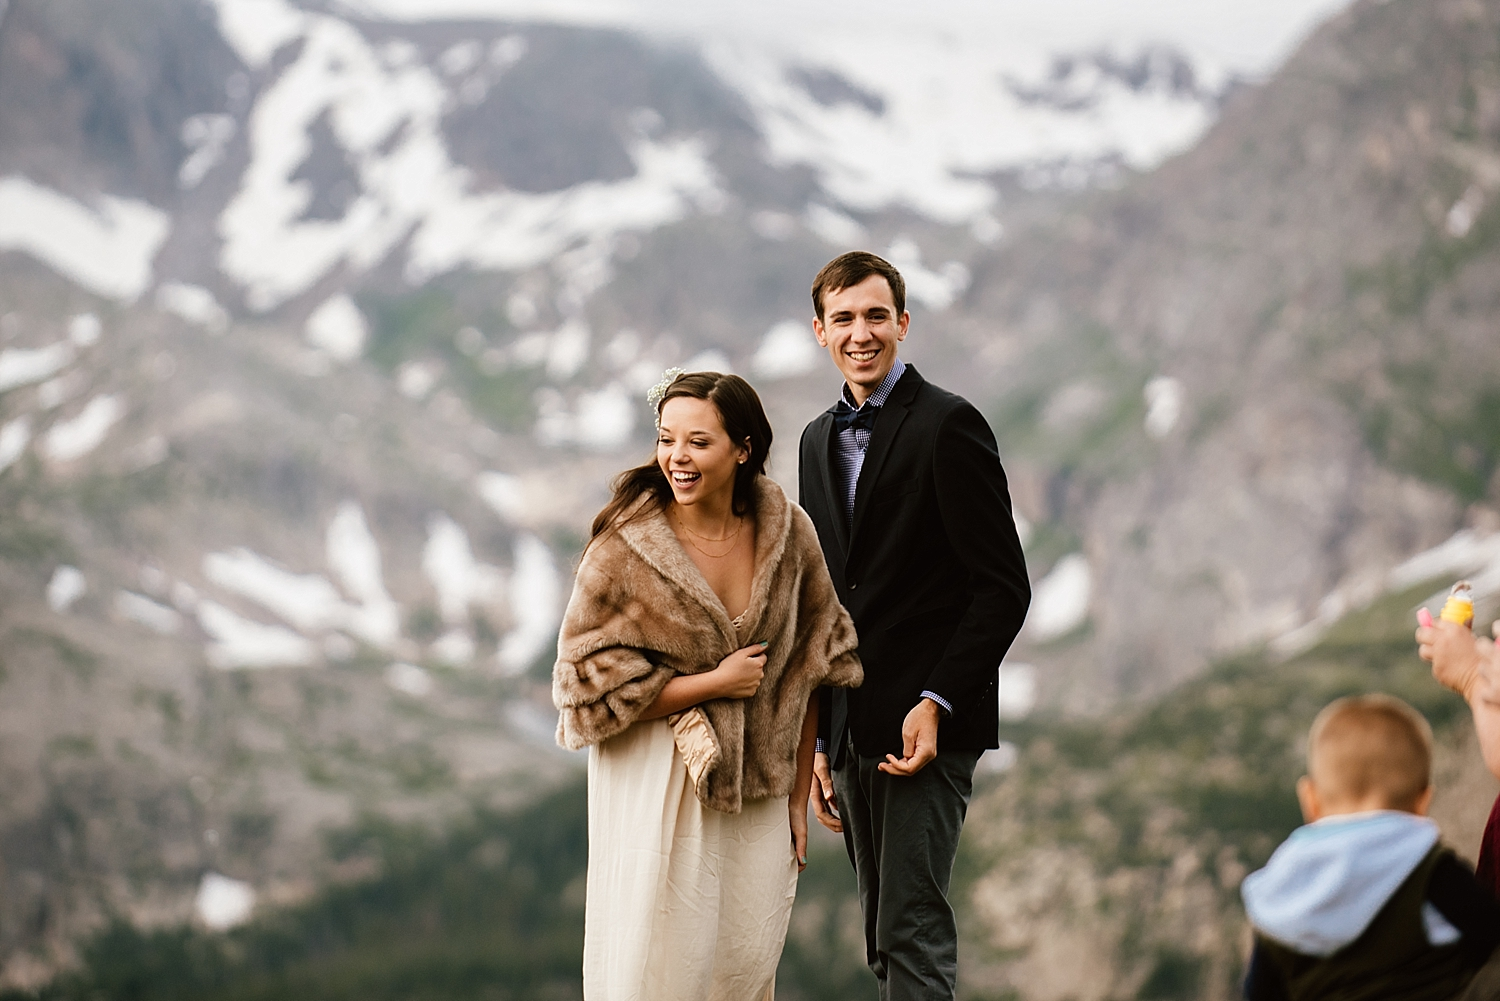 Jessica's adorable vintage fur shawl she's wearing over her wedding dress is so gorgeous! I can't wait for my winter wedding in the mountains! | Trail Ridge Road high alpine elopement photos by Estes Park elopement photographer, Maddie Mae.